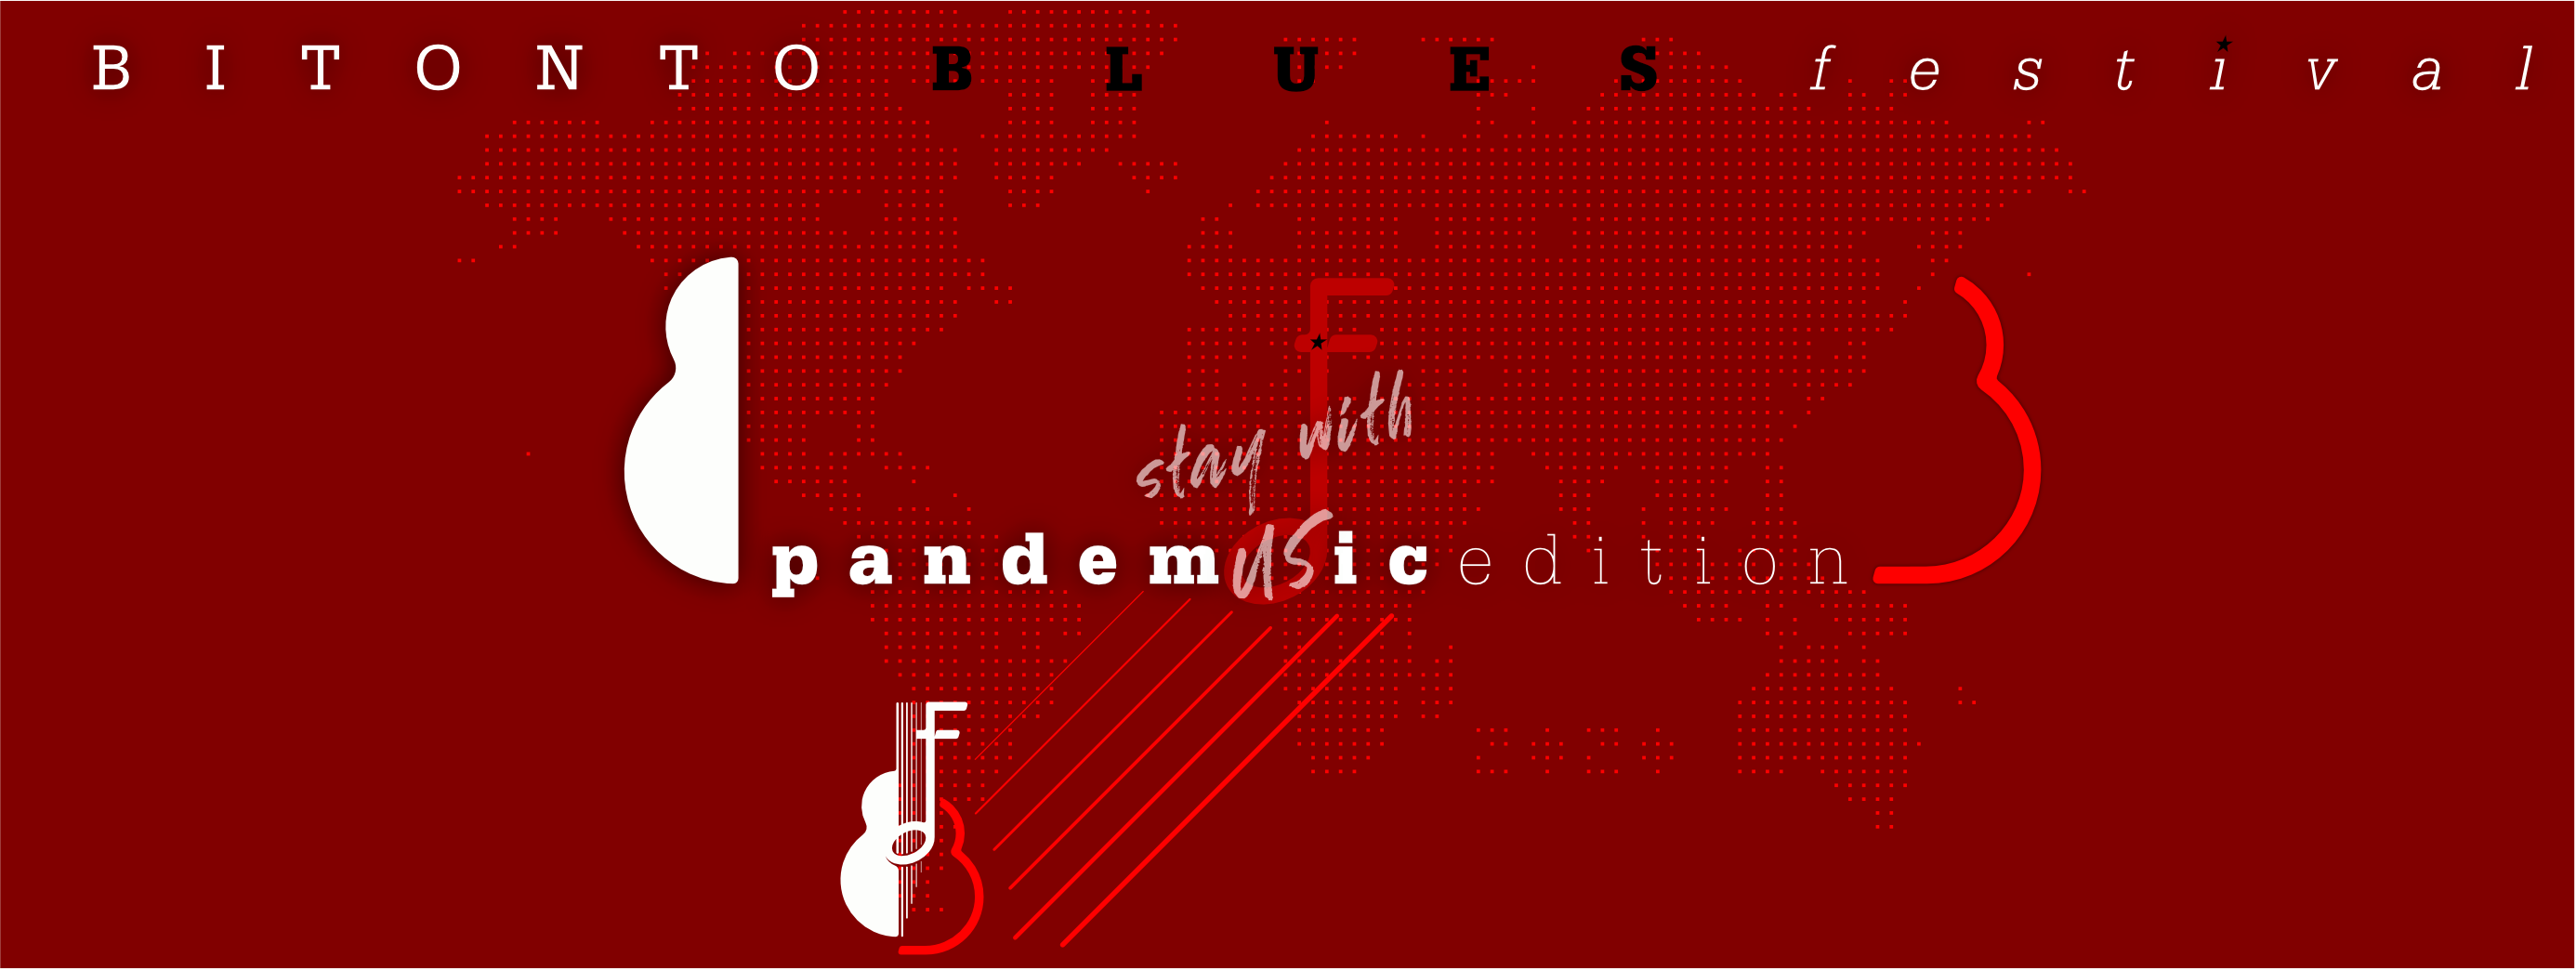 Pandemusic edition, il Bitonto Blues Festival entra in ogni casa